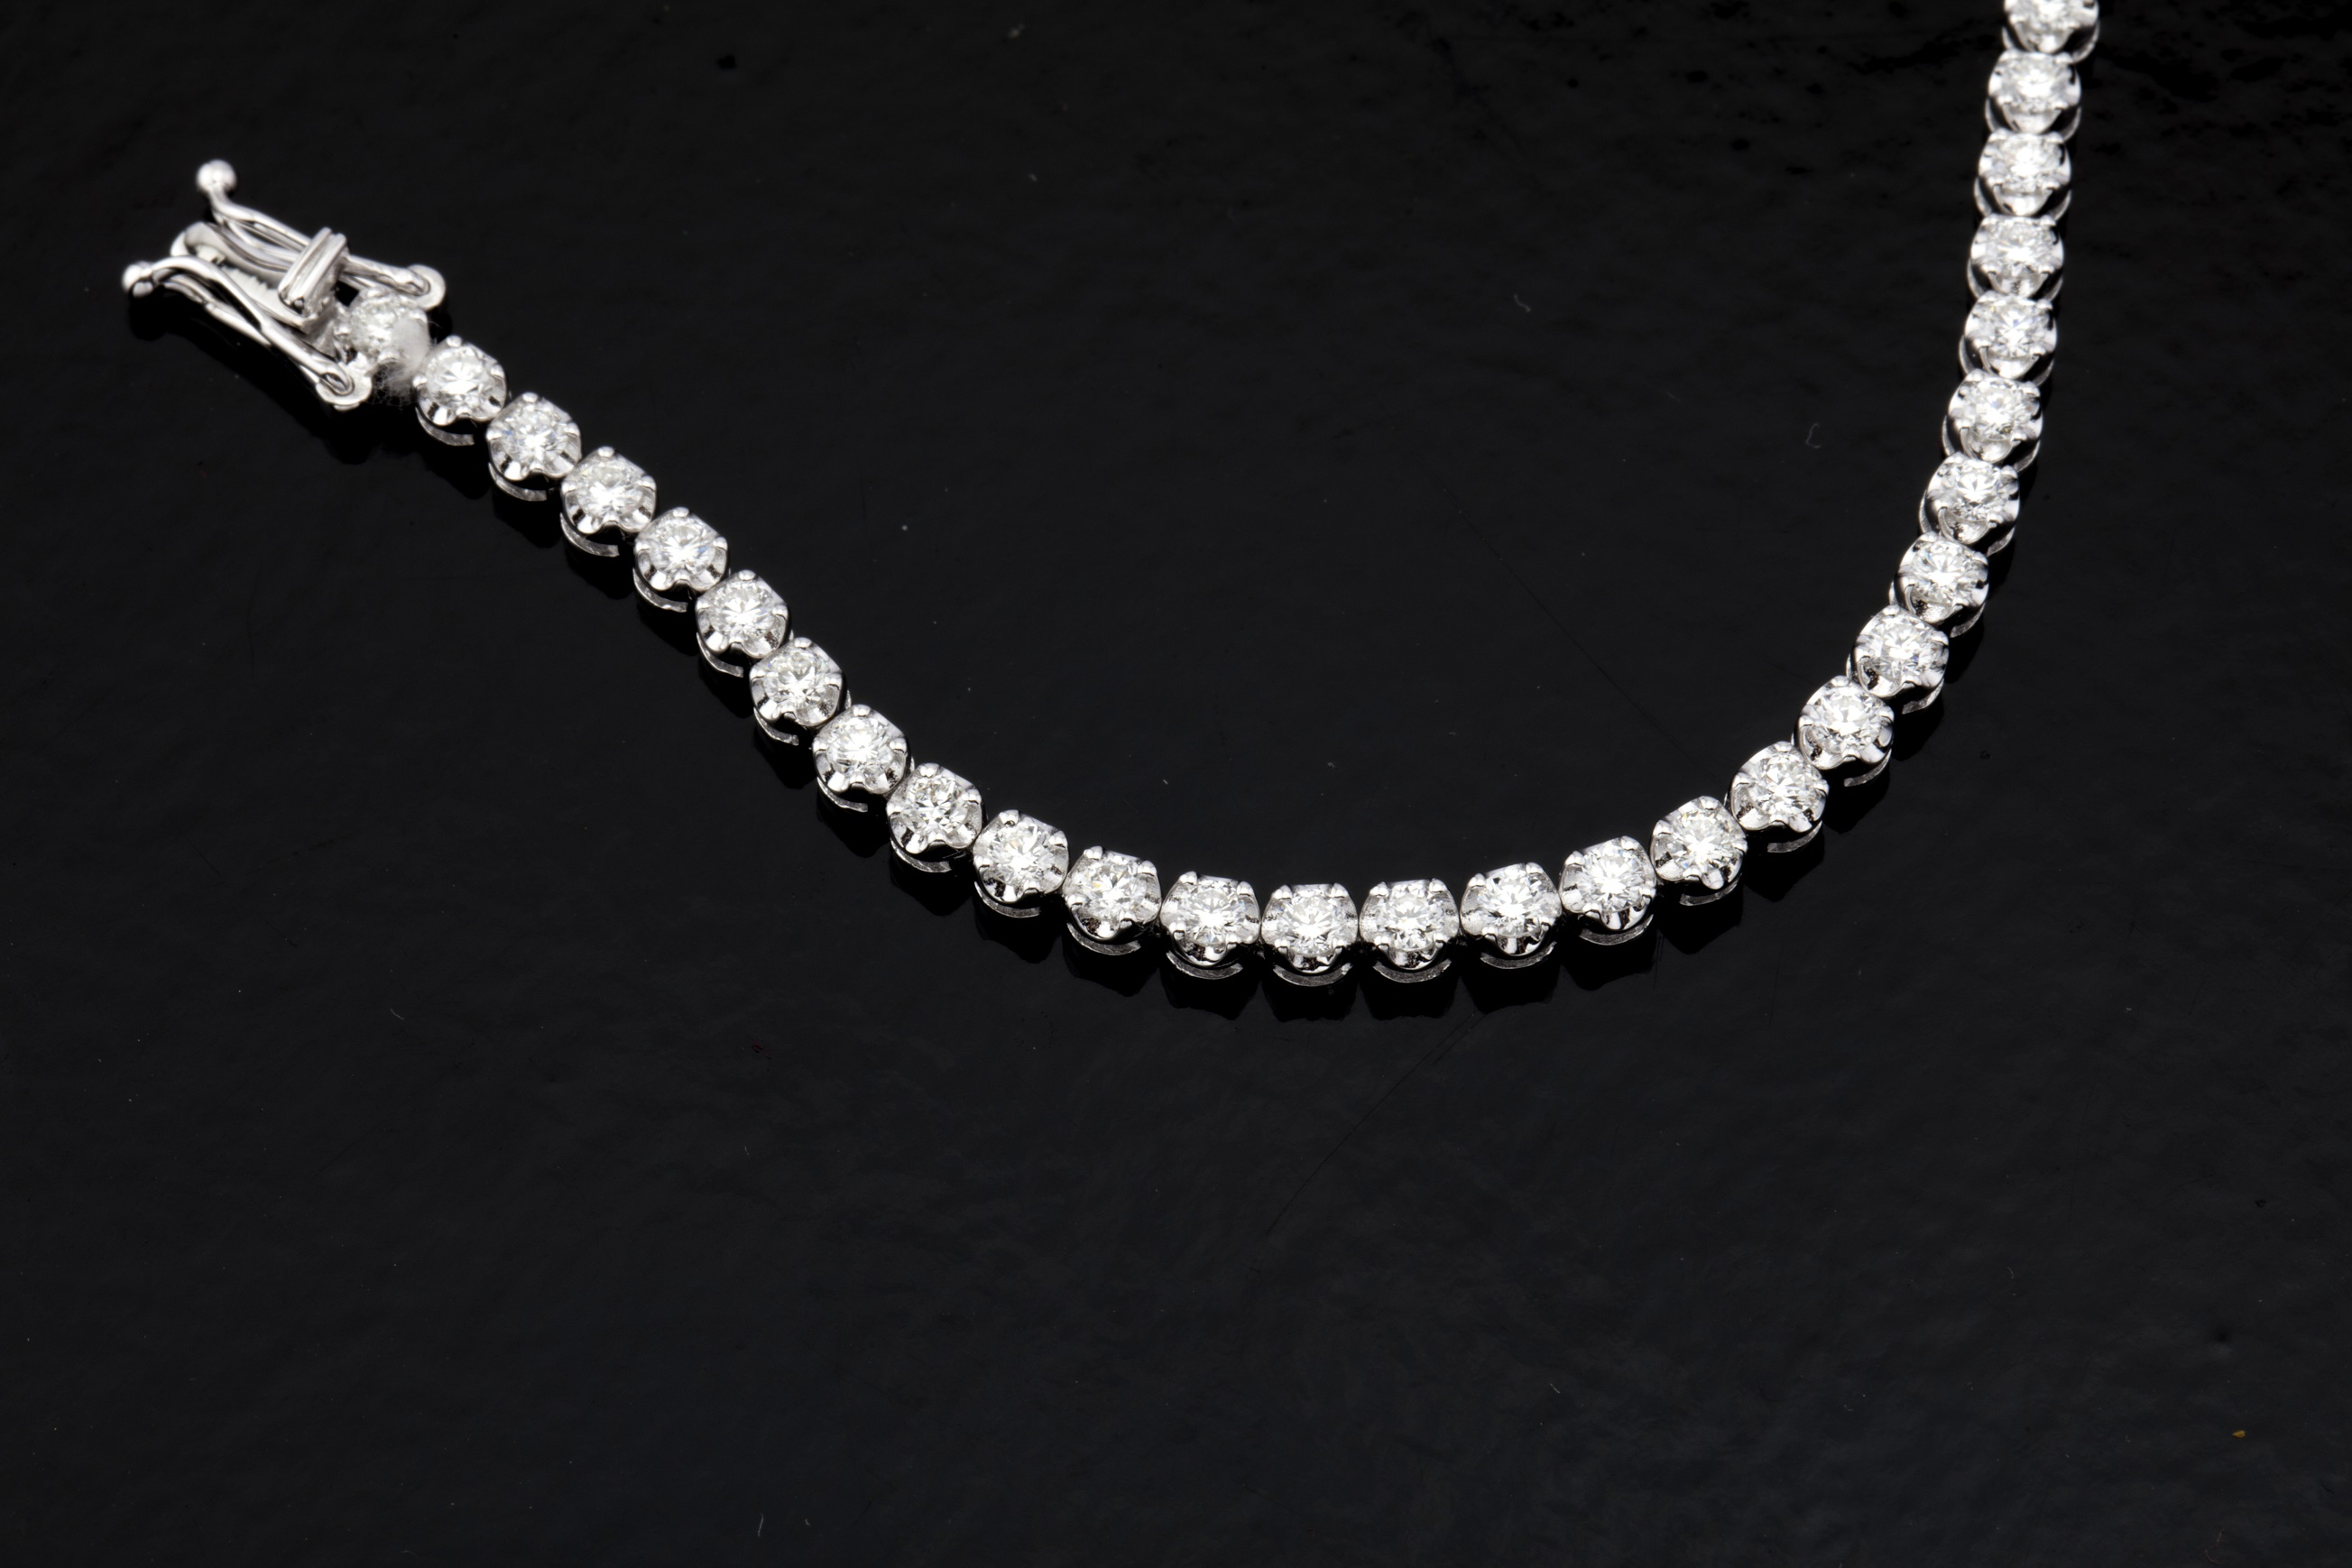 Lot 24 - 14K Diamond Bracelet 3,00ct